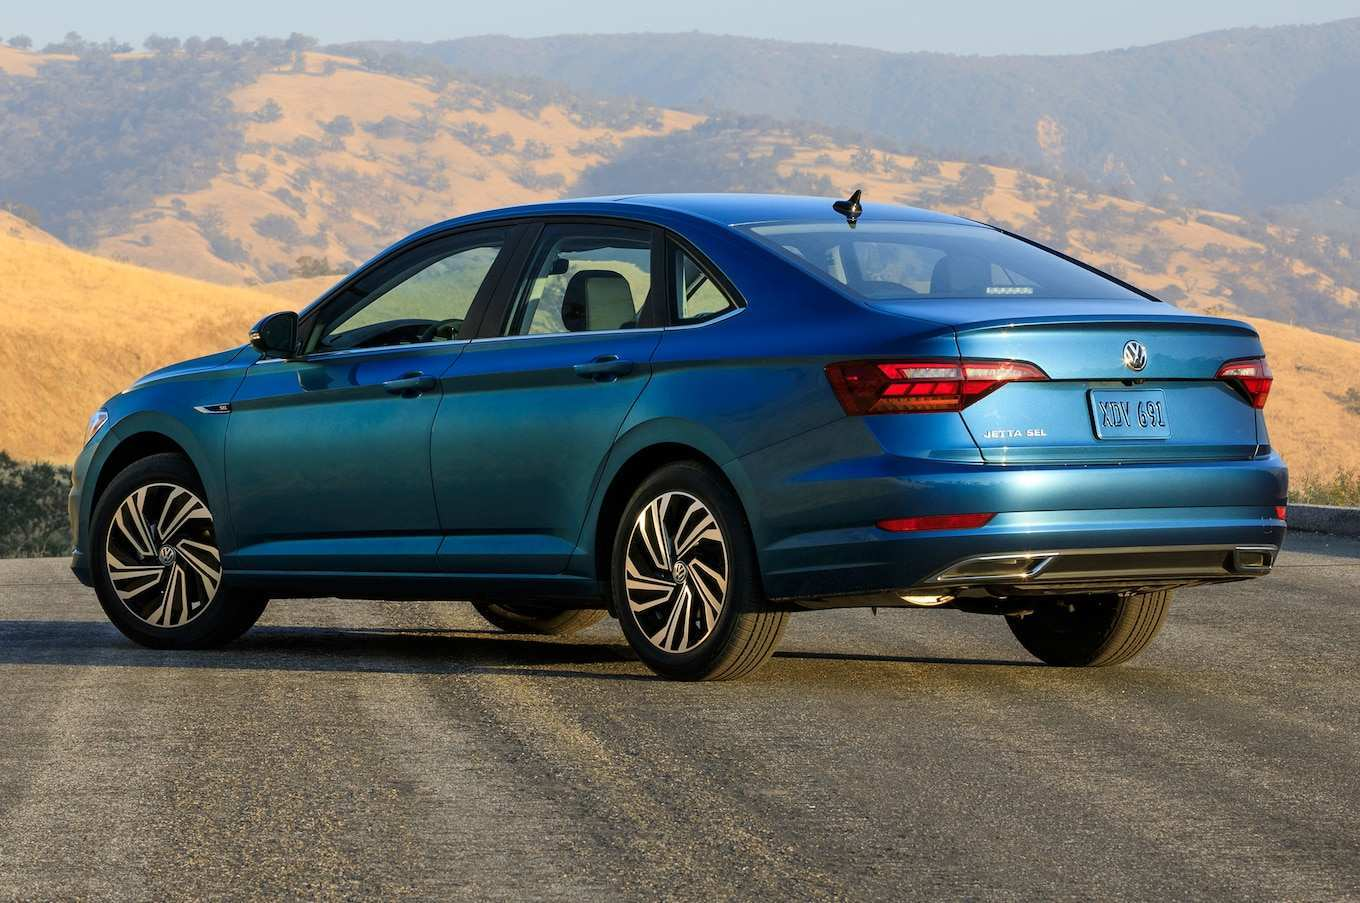 76 New Volkswagen Jetta 2019 Horsepower Price Design And Review